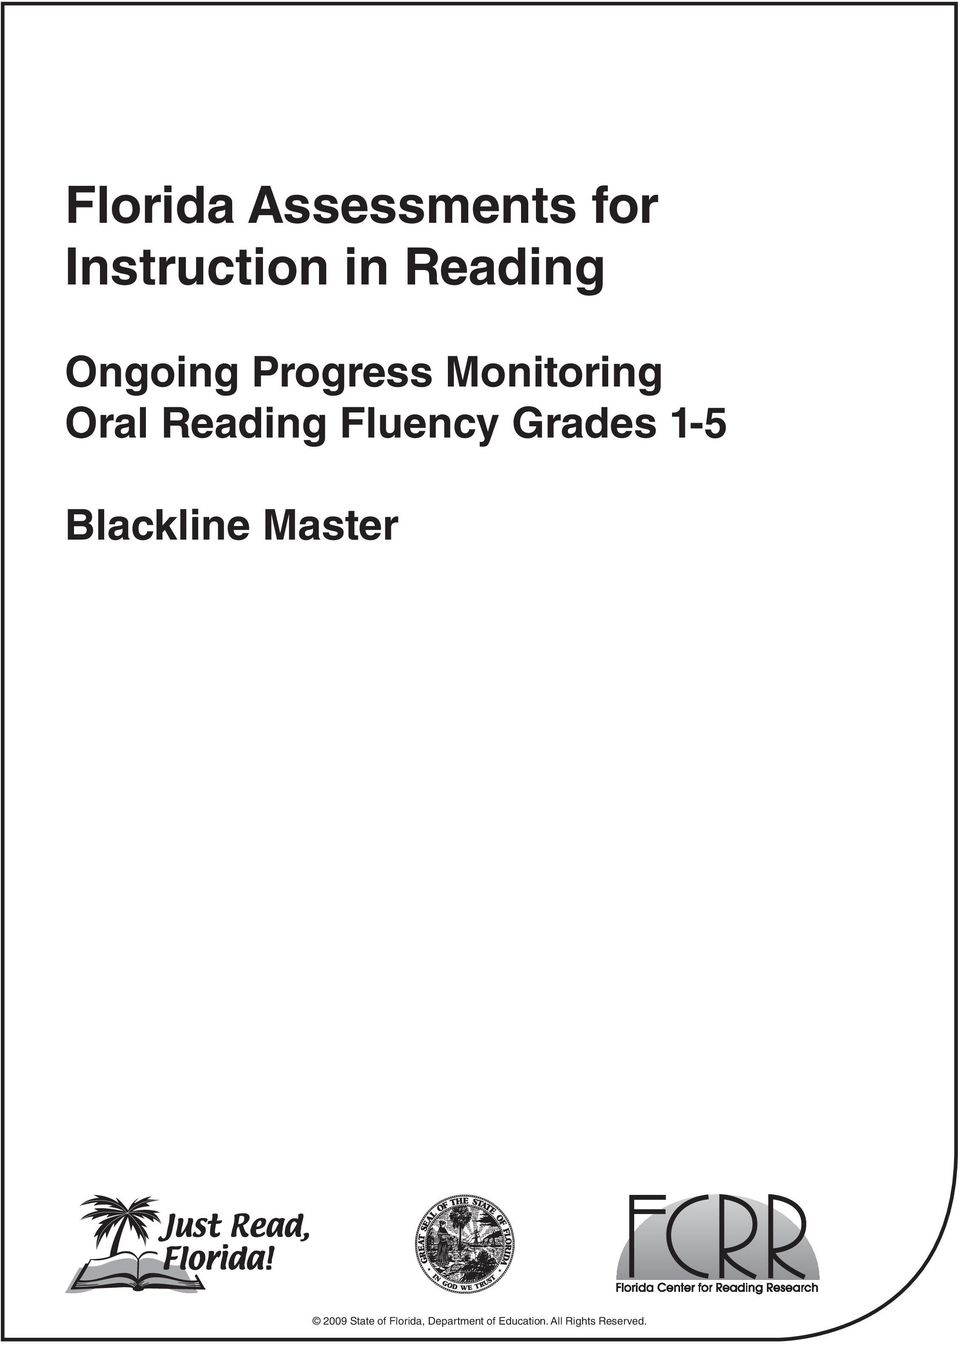 Florida Assessments for Instruction in Reading - PDF